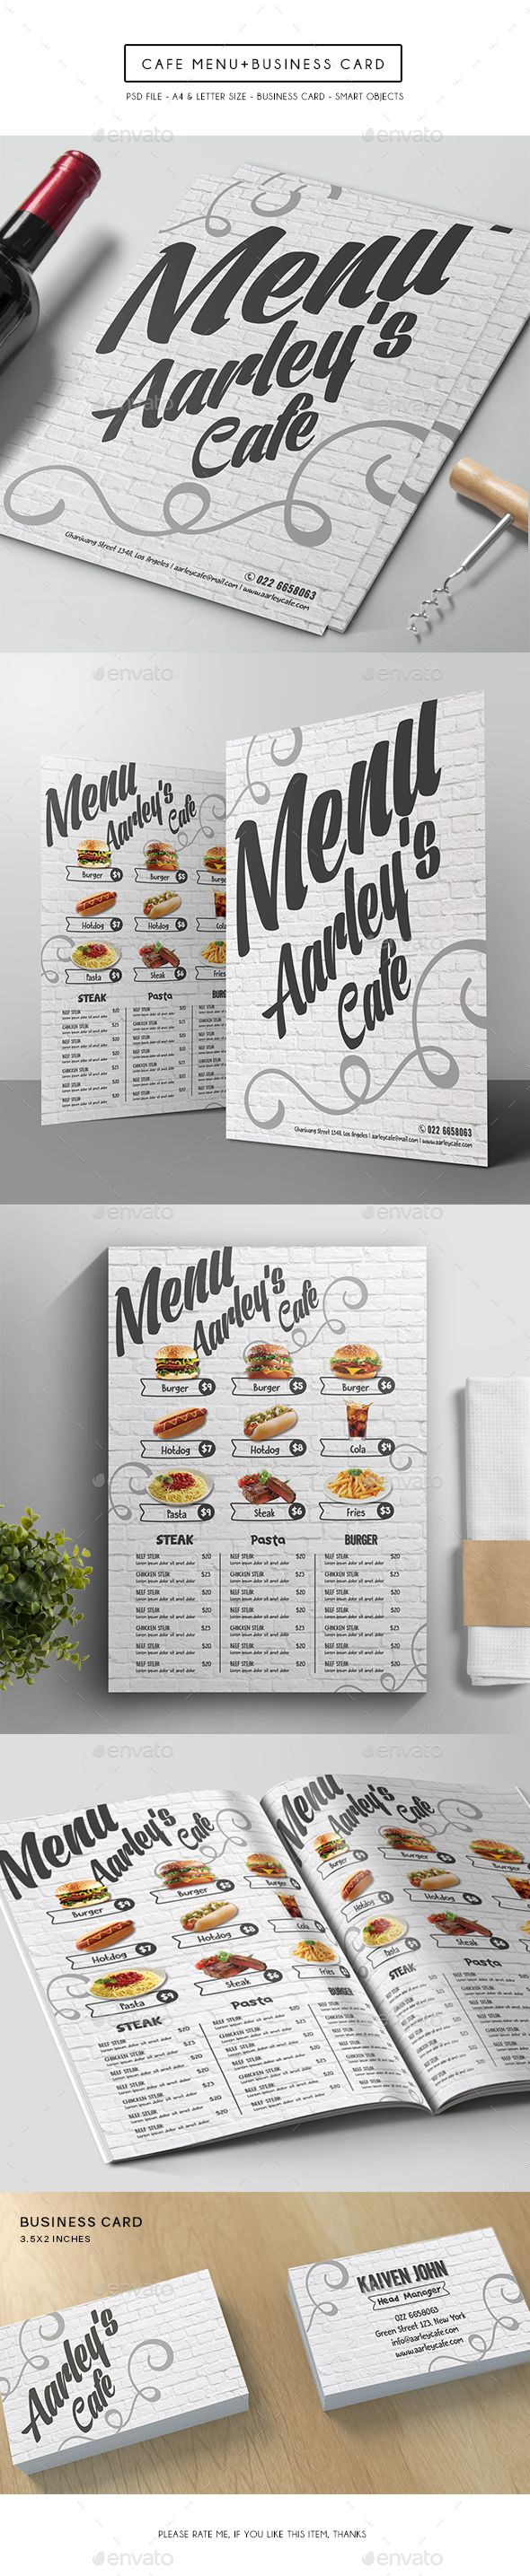 Cafe Menu + Business Card - Food Menus Print Templates. DOWNLOAD http://graphicriver.net/item/cafe-menu-business-card/15086419?ref=sinzo